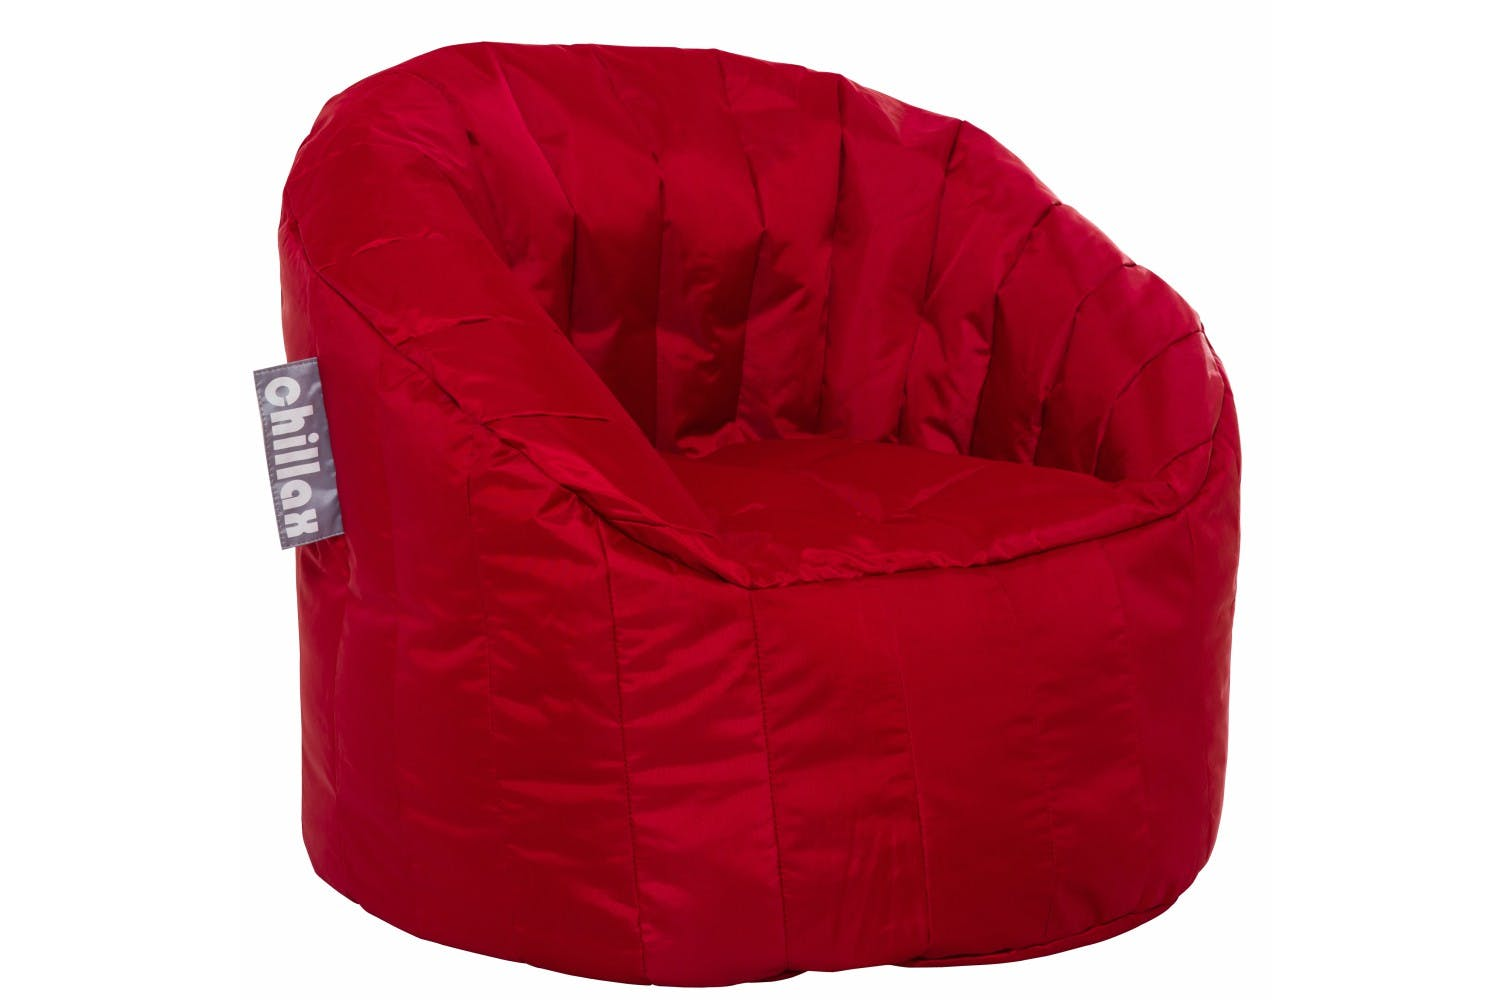 chillax kids tub chair bean bag  red  harvey norman ireland - chillax kids tub chair bean bag  red